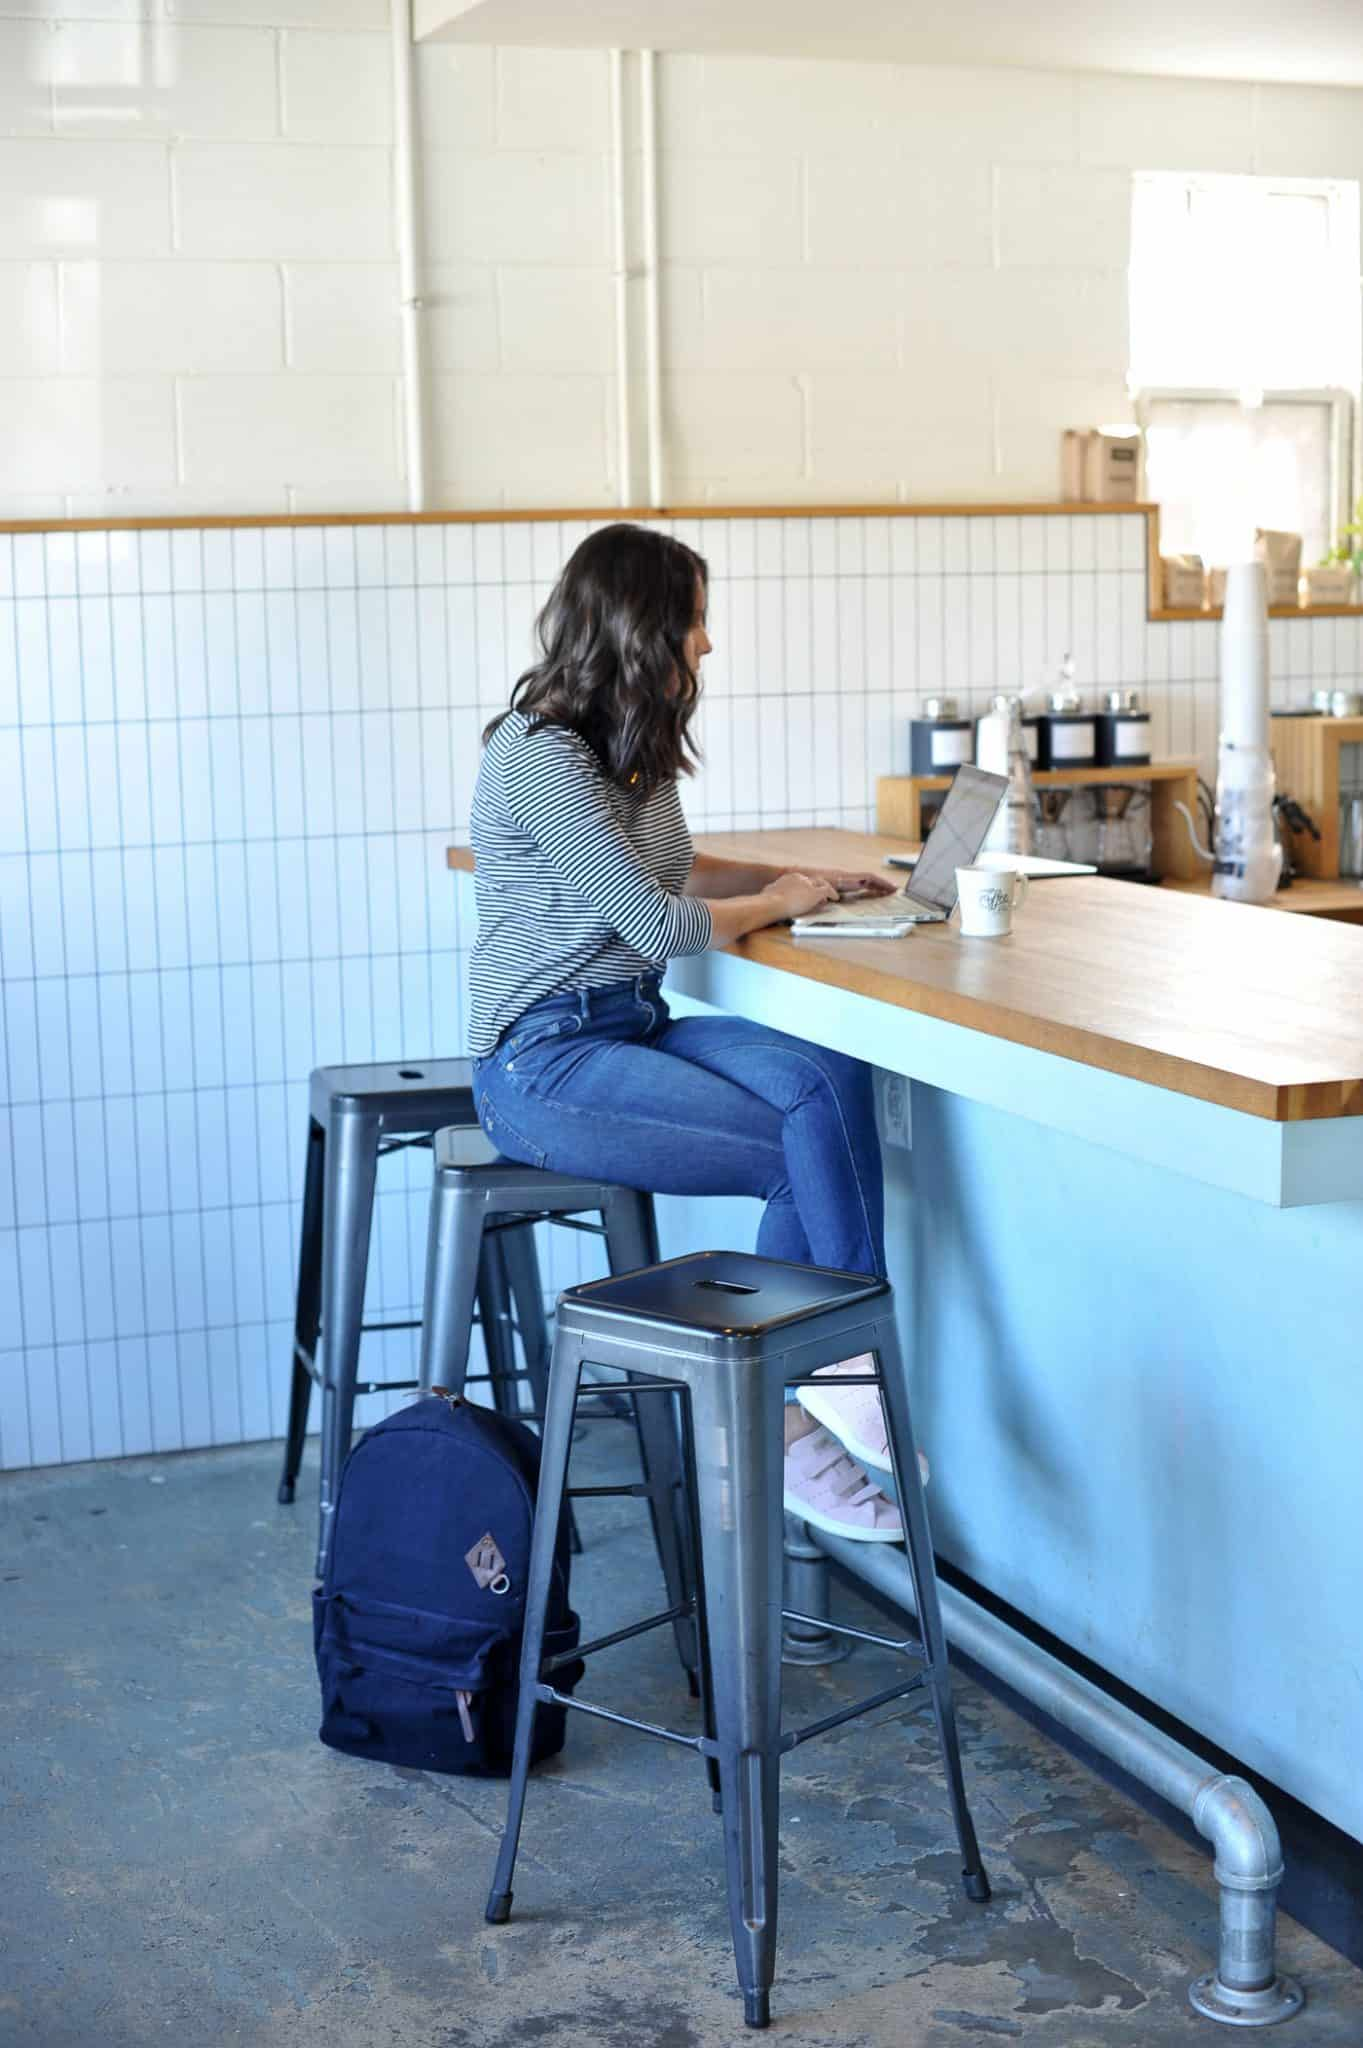 girl working at coffee shop, The Best New Coffee Shop In Atlanta, Atlanta unique stores | My Style Vita @mystylevita